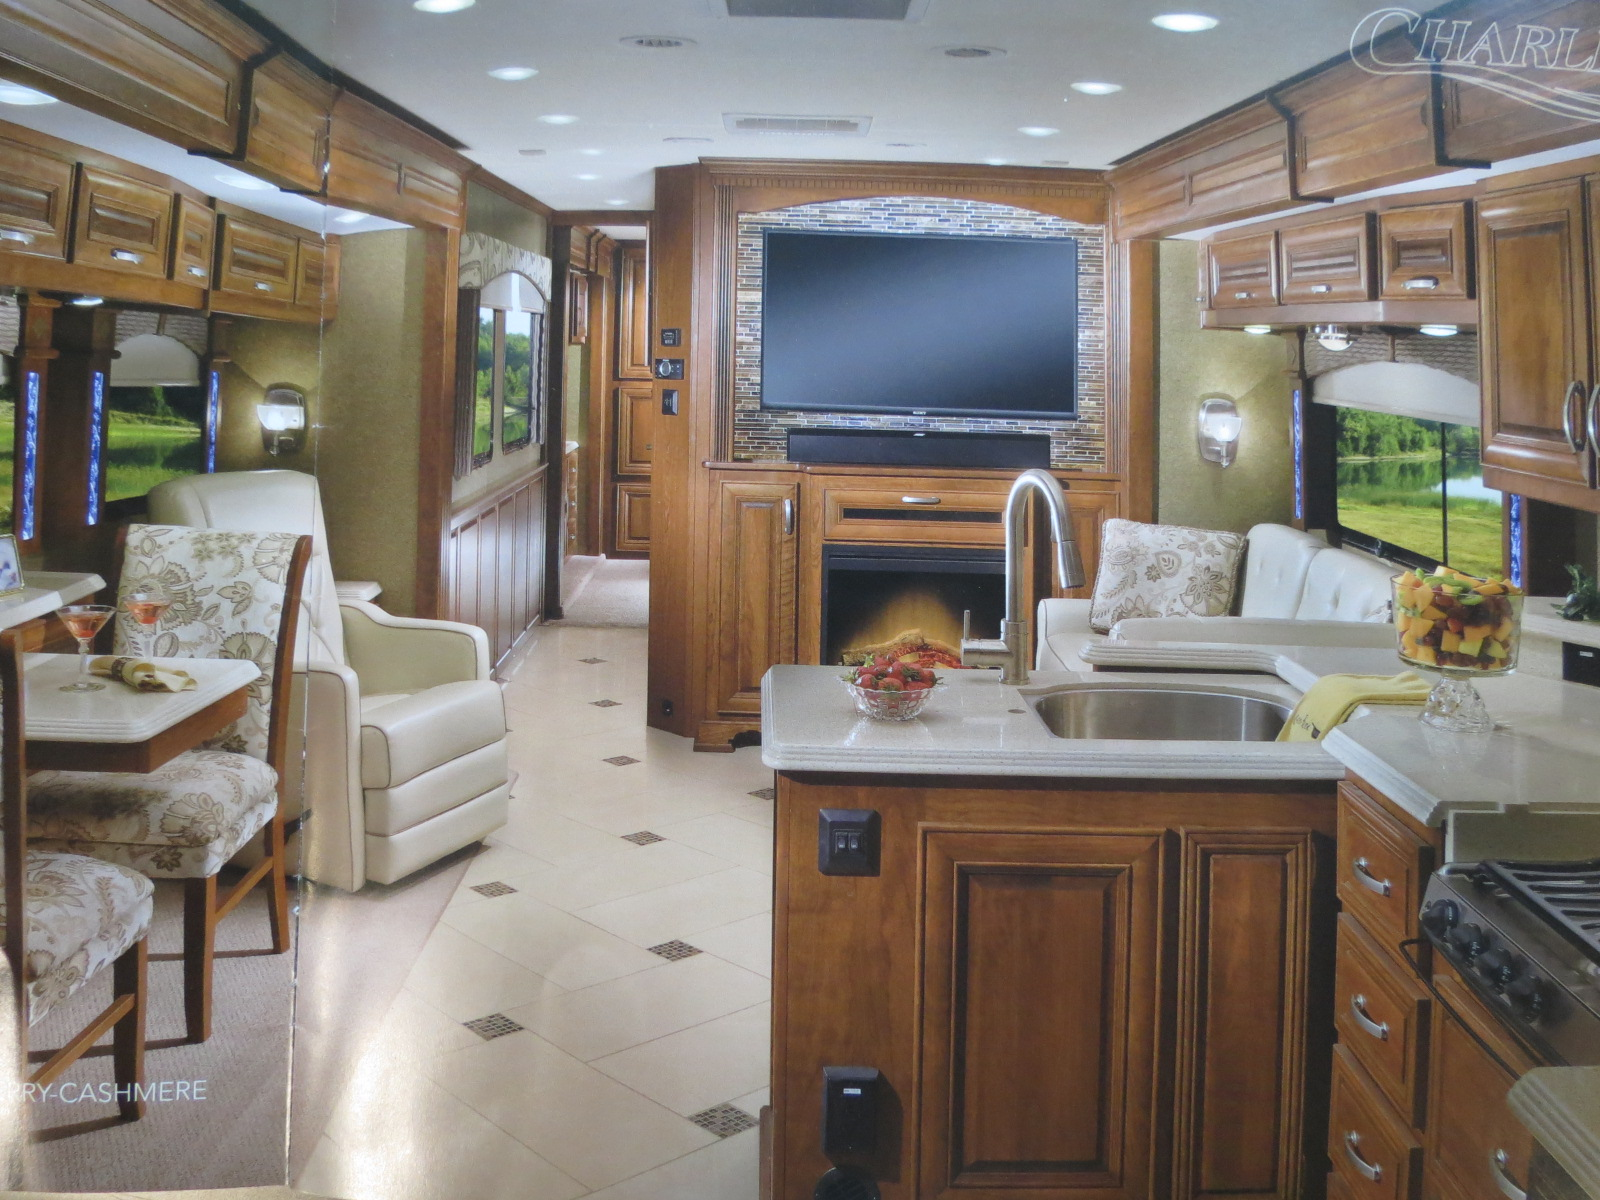 Inside our new RV